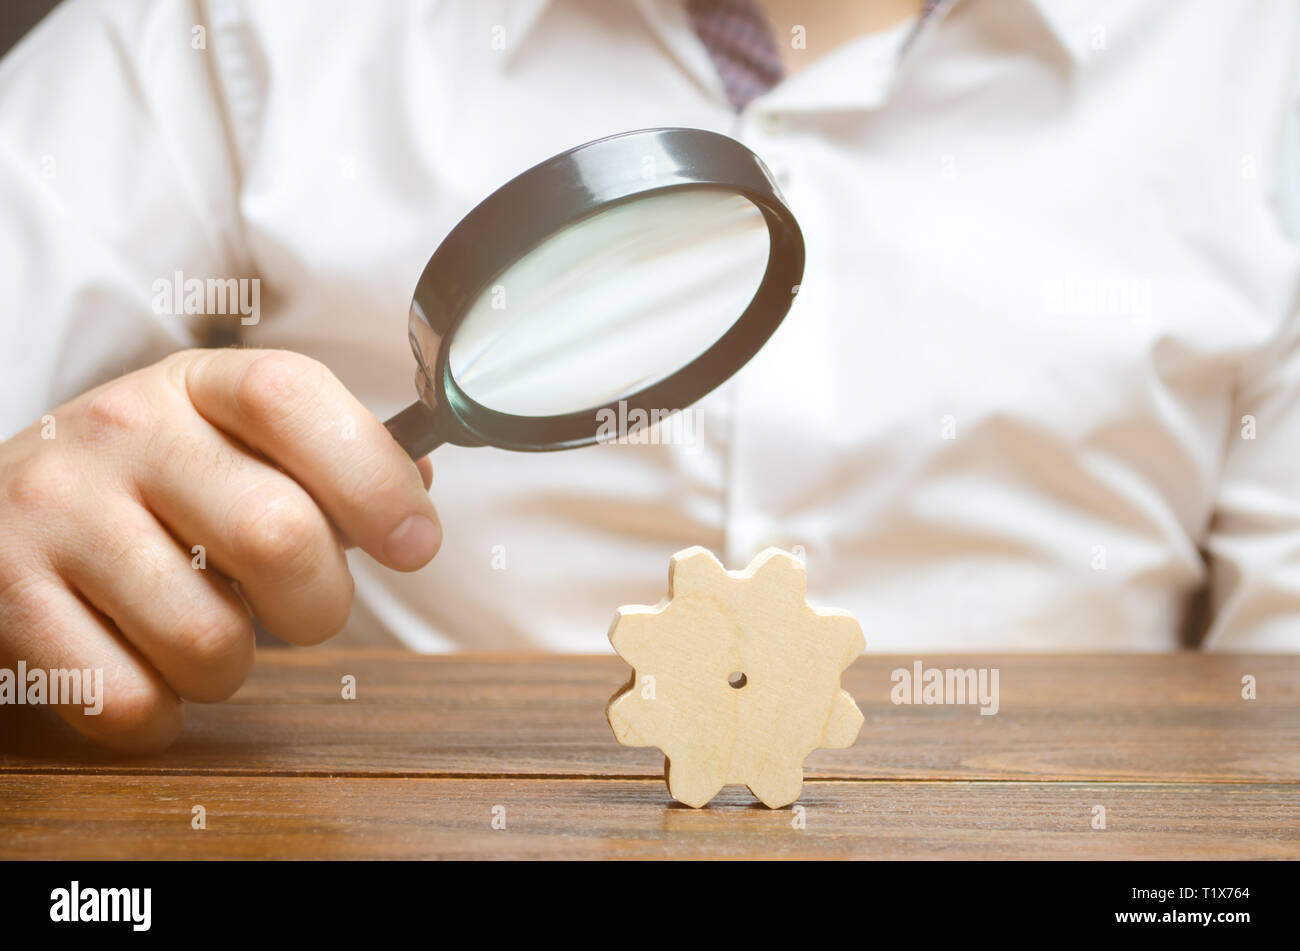 Businessman examines a wooden gear through a magnifying glass. study and analysis of business processes and subjects. A cog from a big business machin - Stock Image